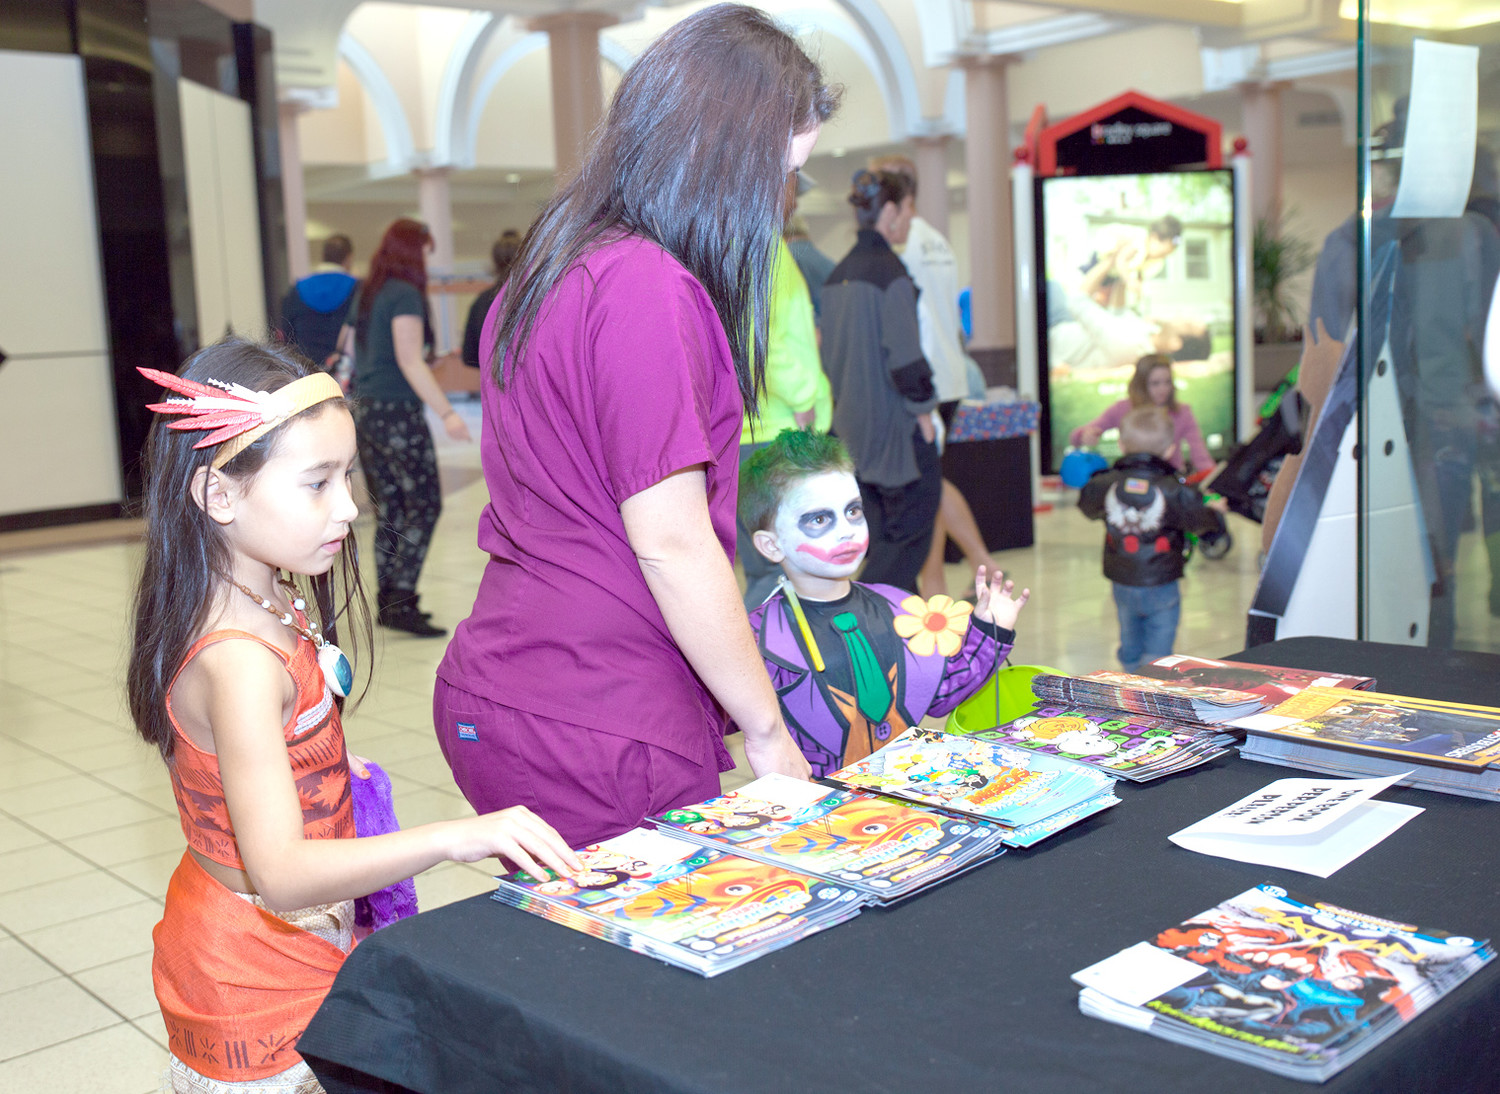 A COUPLE OF YOUNG trick-or-treaters dressed as Pocahontas and the Joker contemplate what comic book to take at Dicehead Games and Comics, during the Spooktacular Fall Festival in Bradley Square Mall.